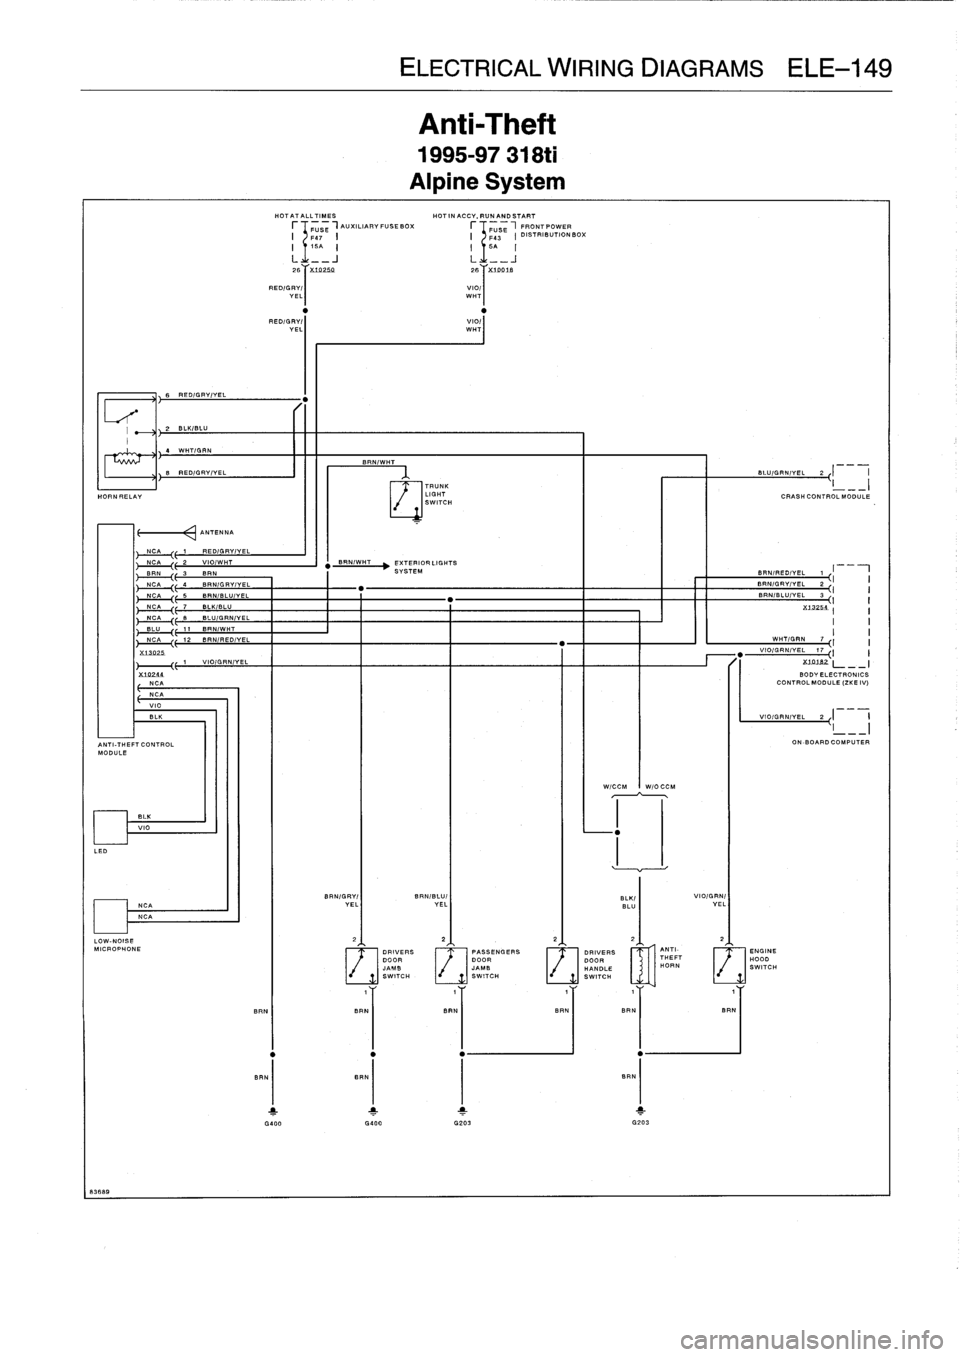 Bmw Transmission Wiring Diagram With Description Jeffdoedesign